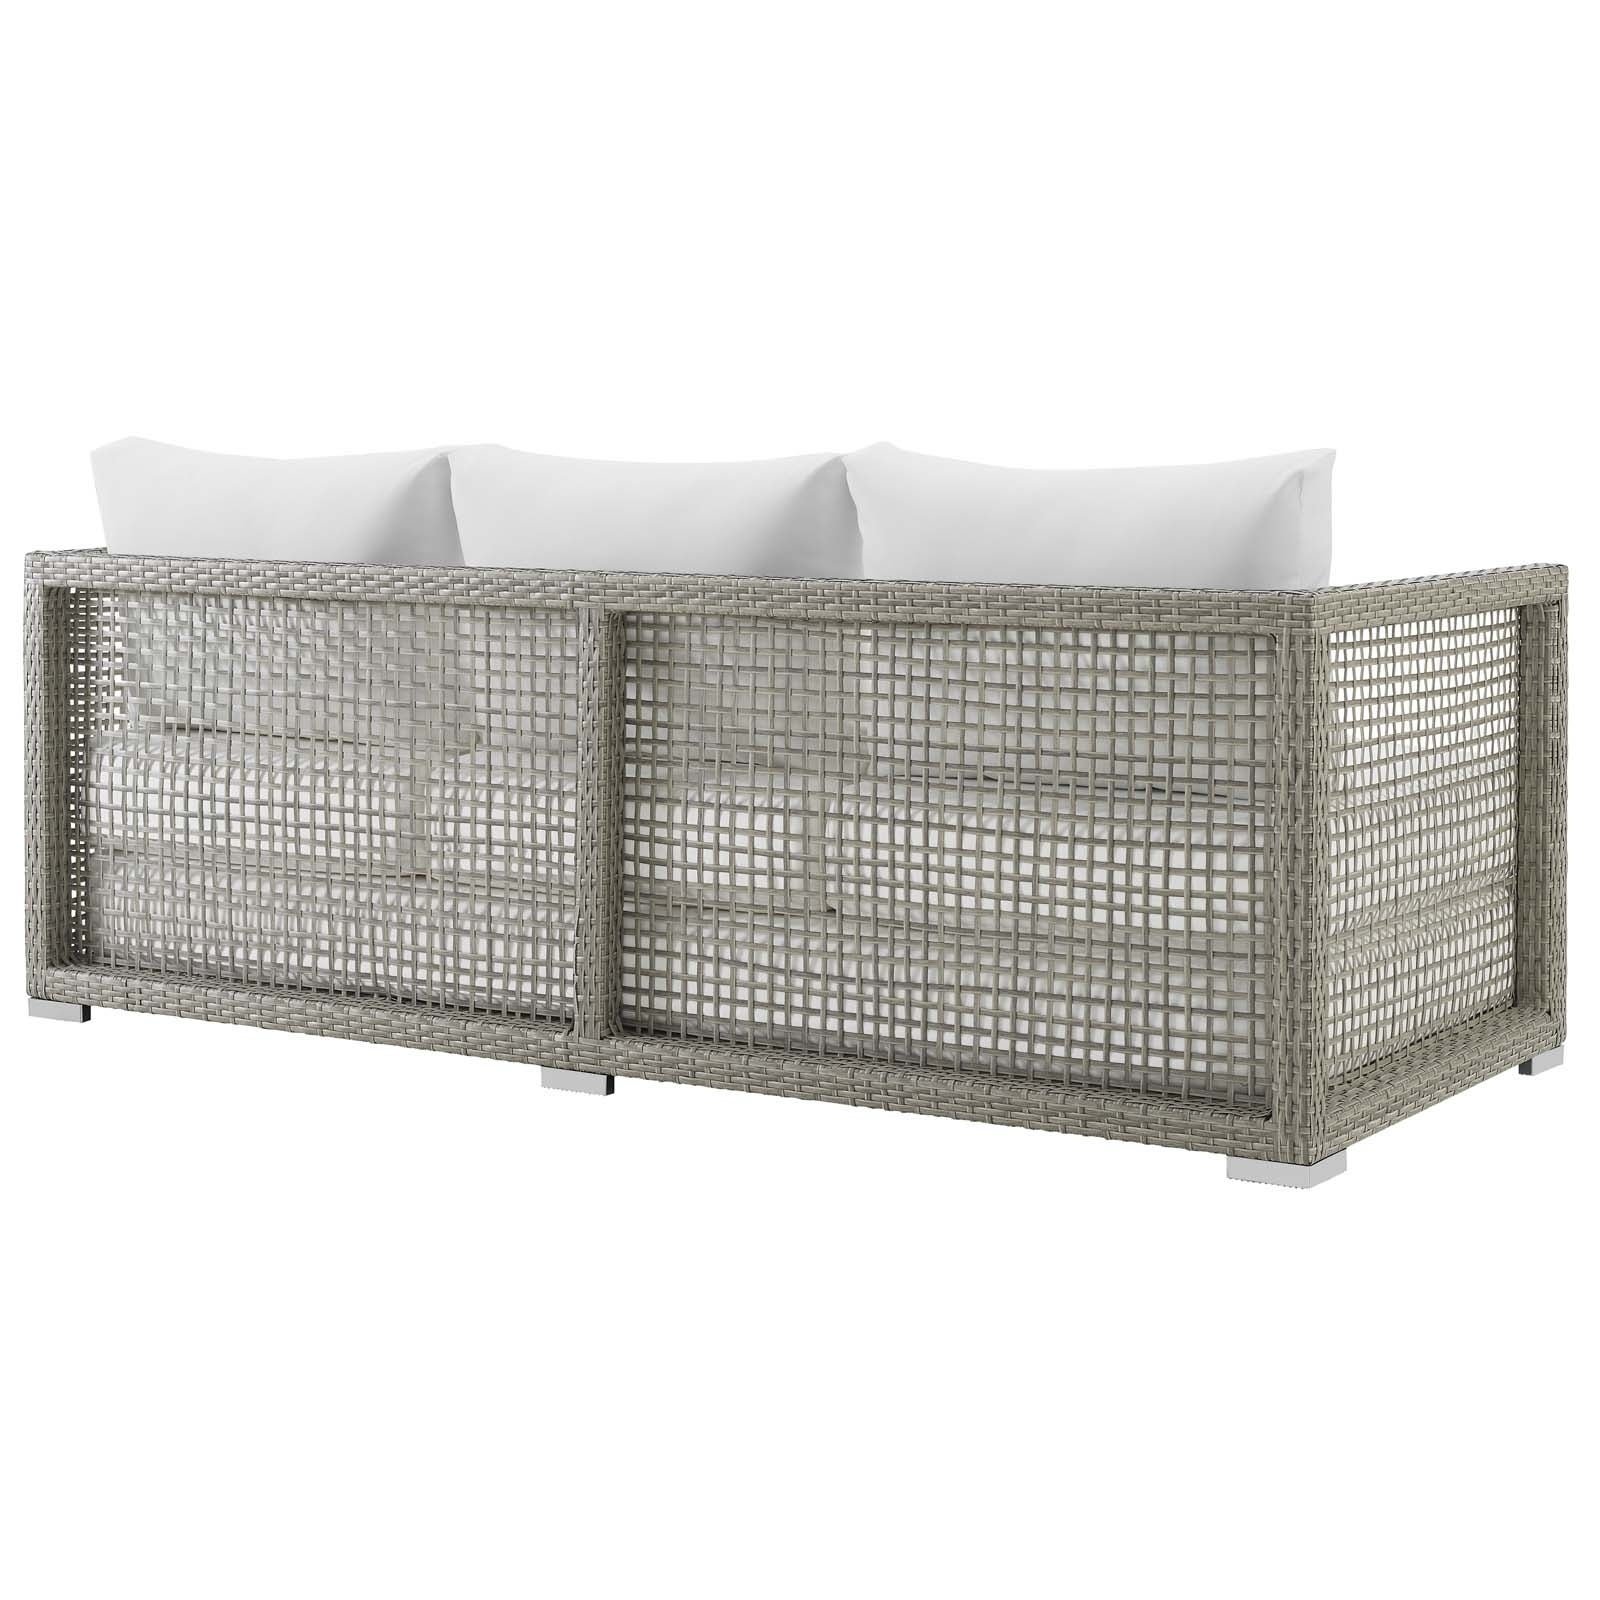 Aura Outdoor Patio Wicker Rattan Sofa